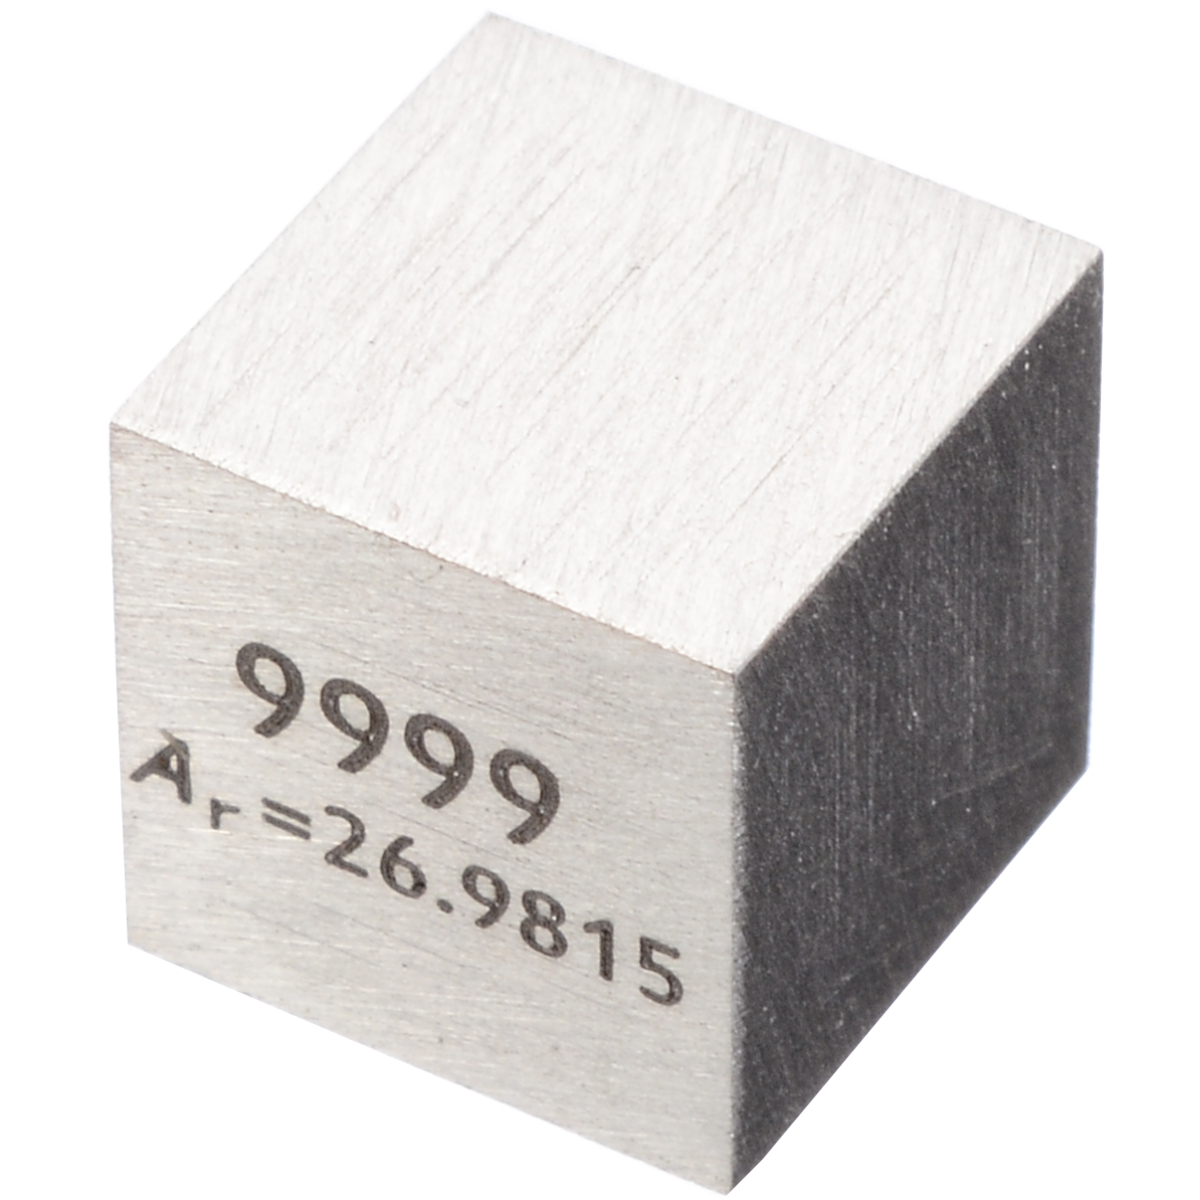 New 99.99% High Purity Aluminum Alloy 10mm Cube Carved Element Periodic Table Mayitr Cube Aluminum